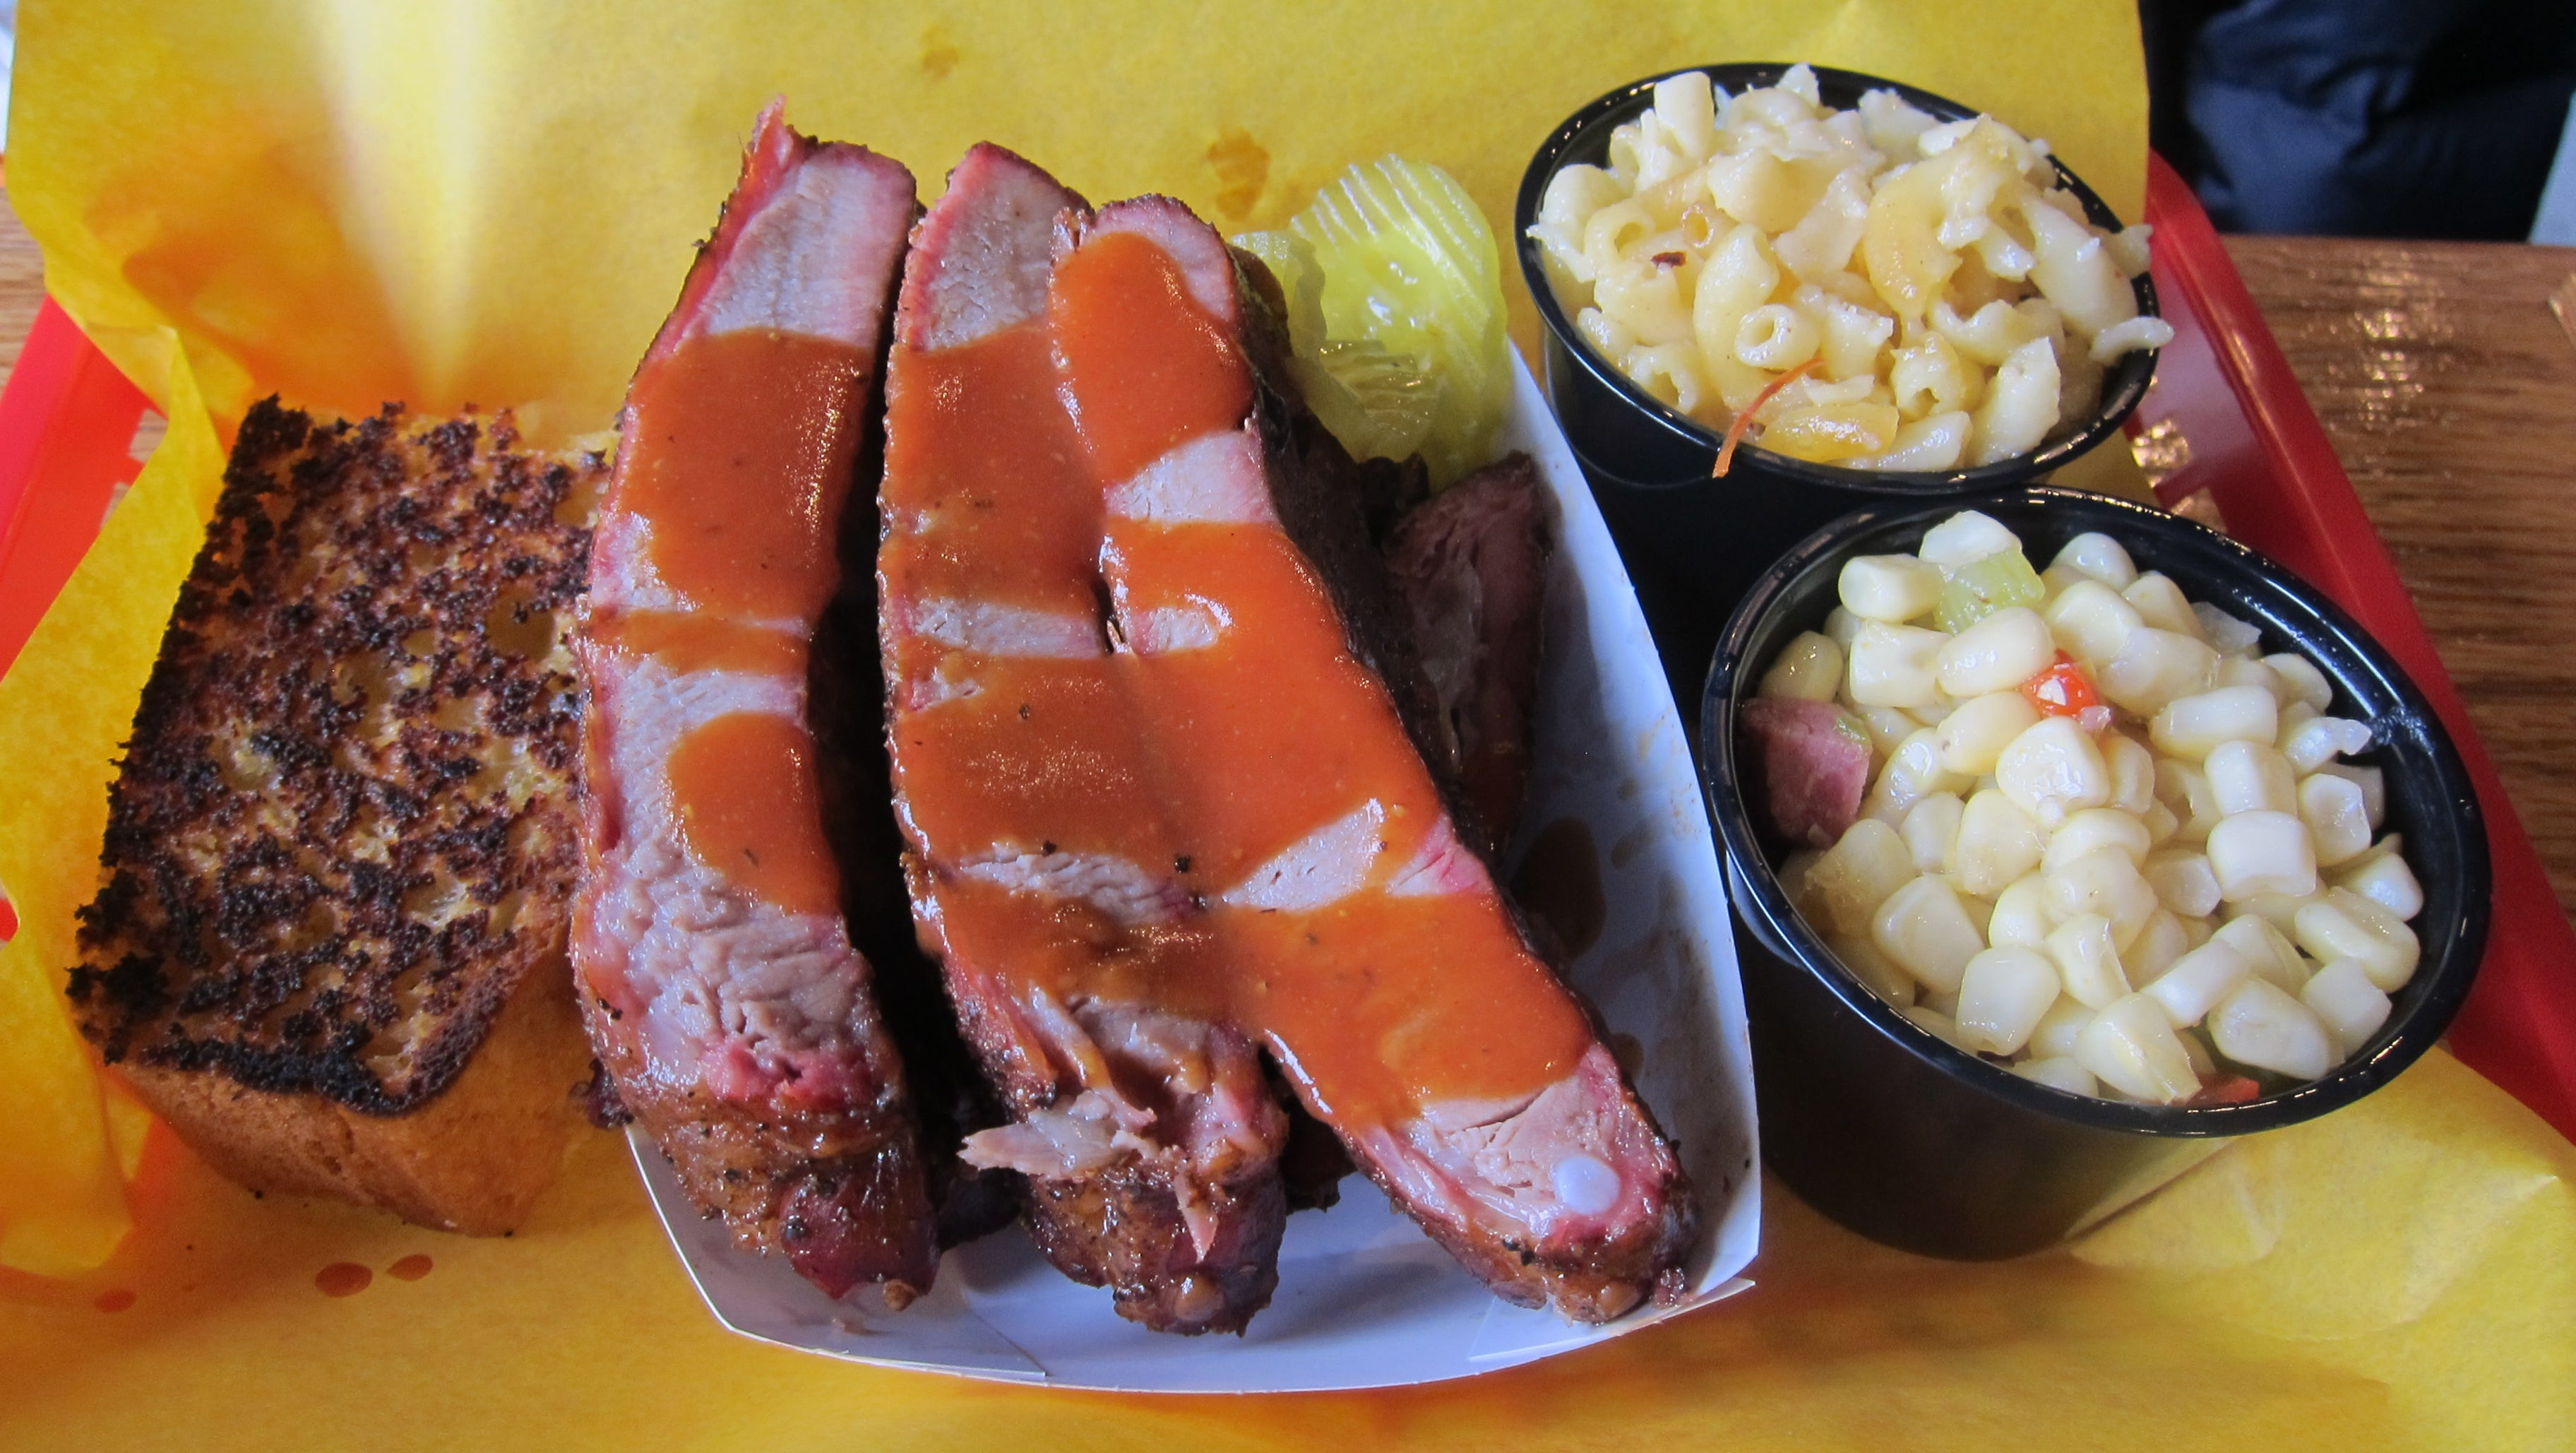 Beyond Mcrib Moe S Bar B Que Does Sparerib Sandwich Right Contact twisted moe ent llc on messenger. moe s bar b que does sparerib sandwich